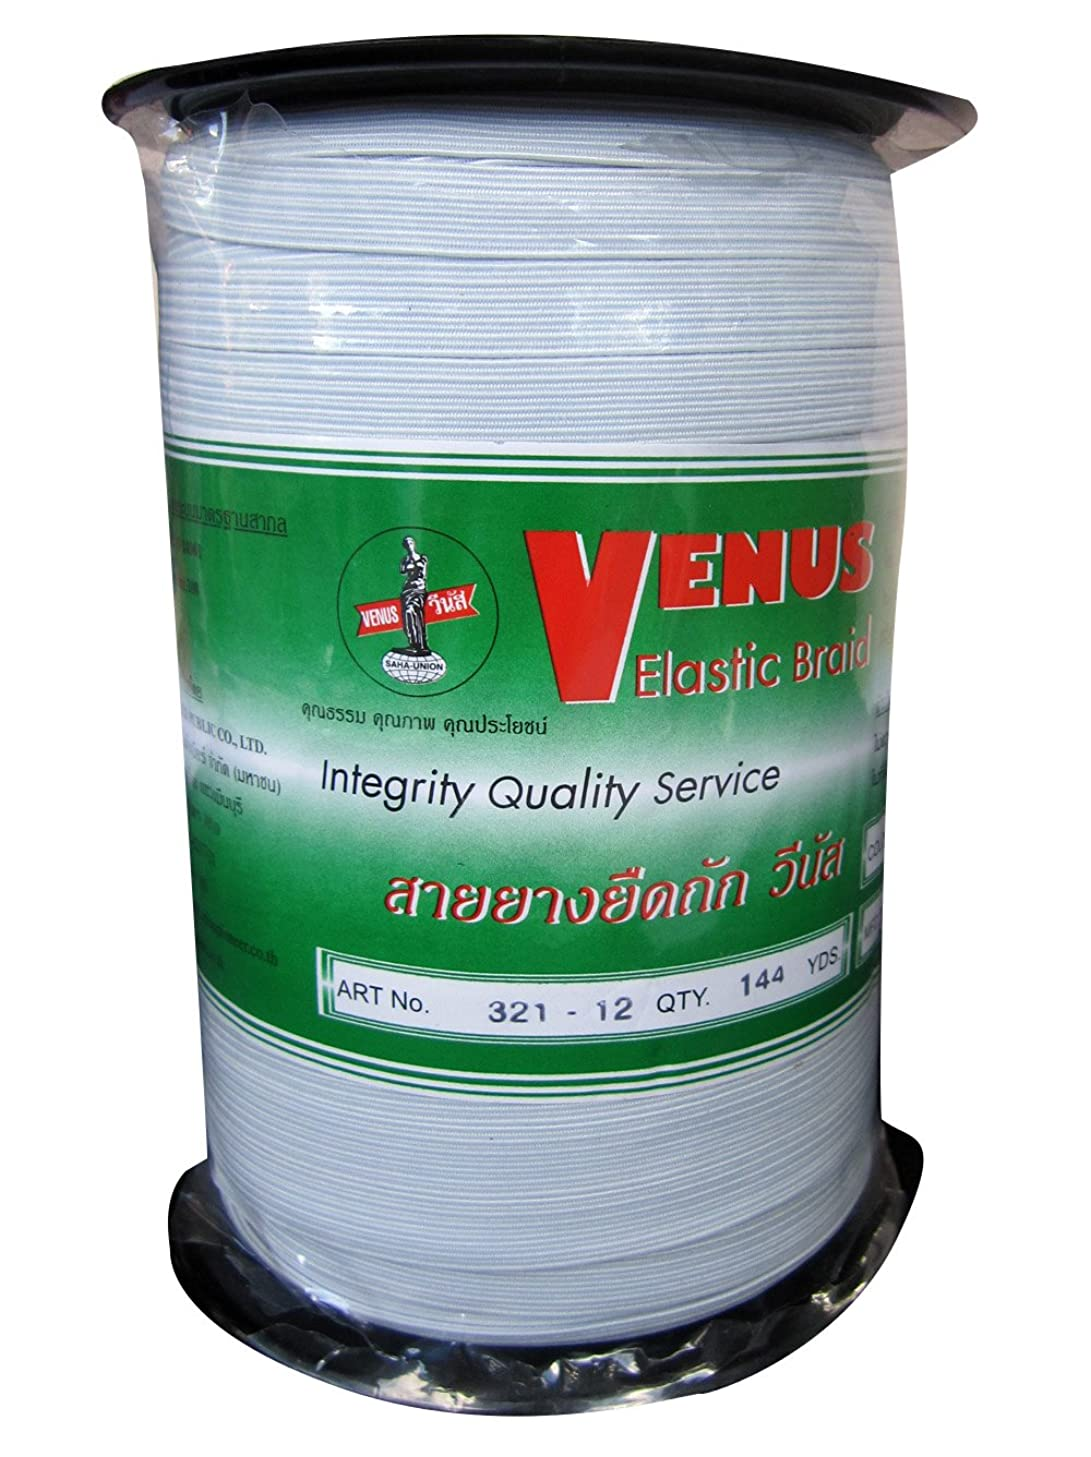 Venus Elastic White Band Tape Braid 12 Cord 144 Yard length Factory Strength roll